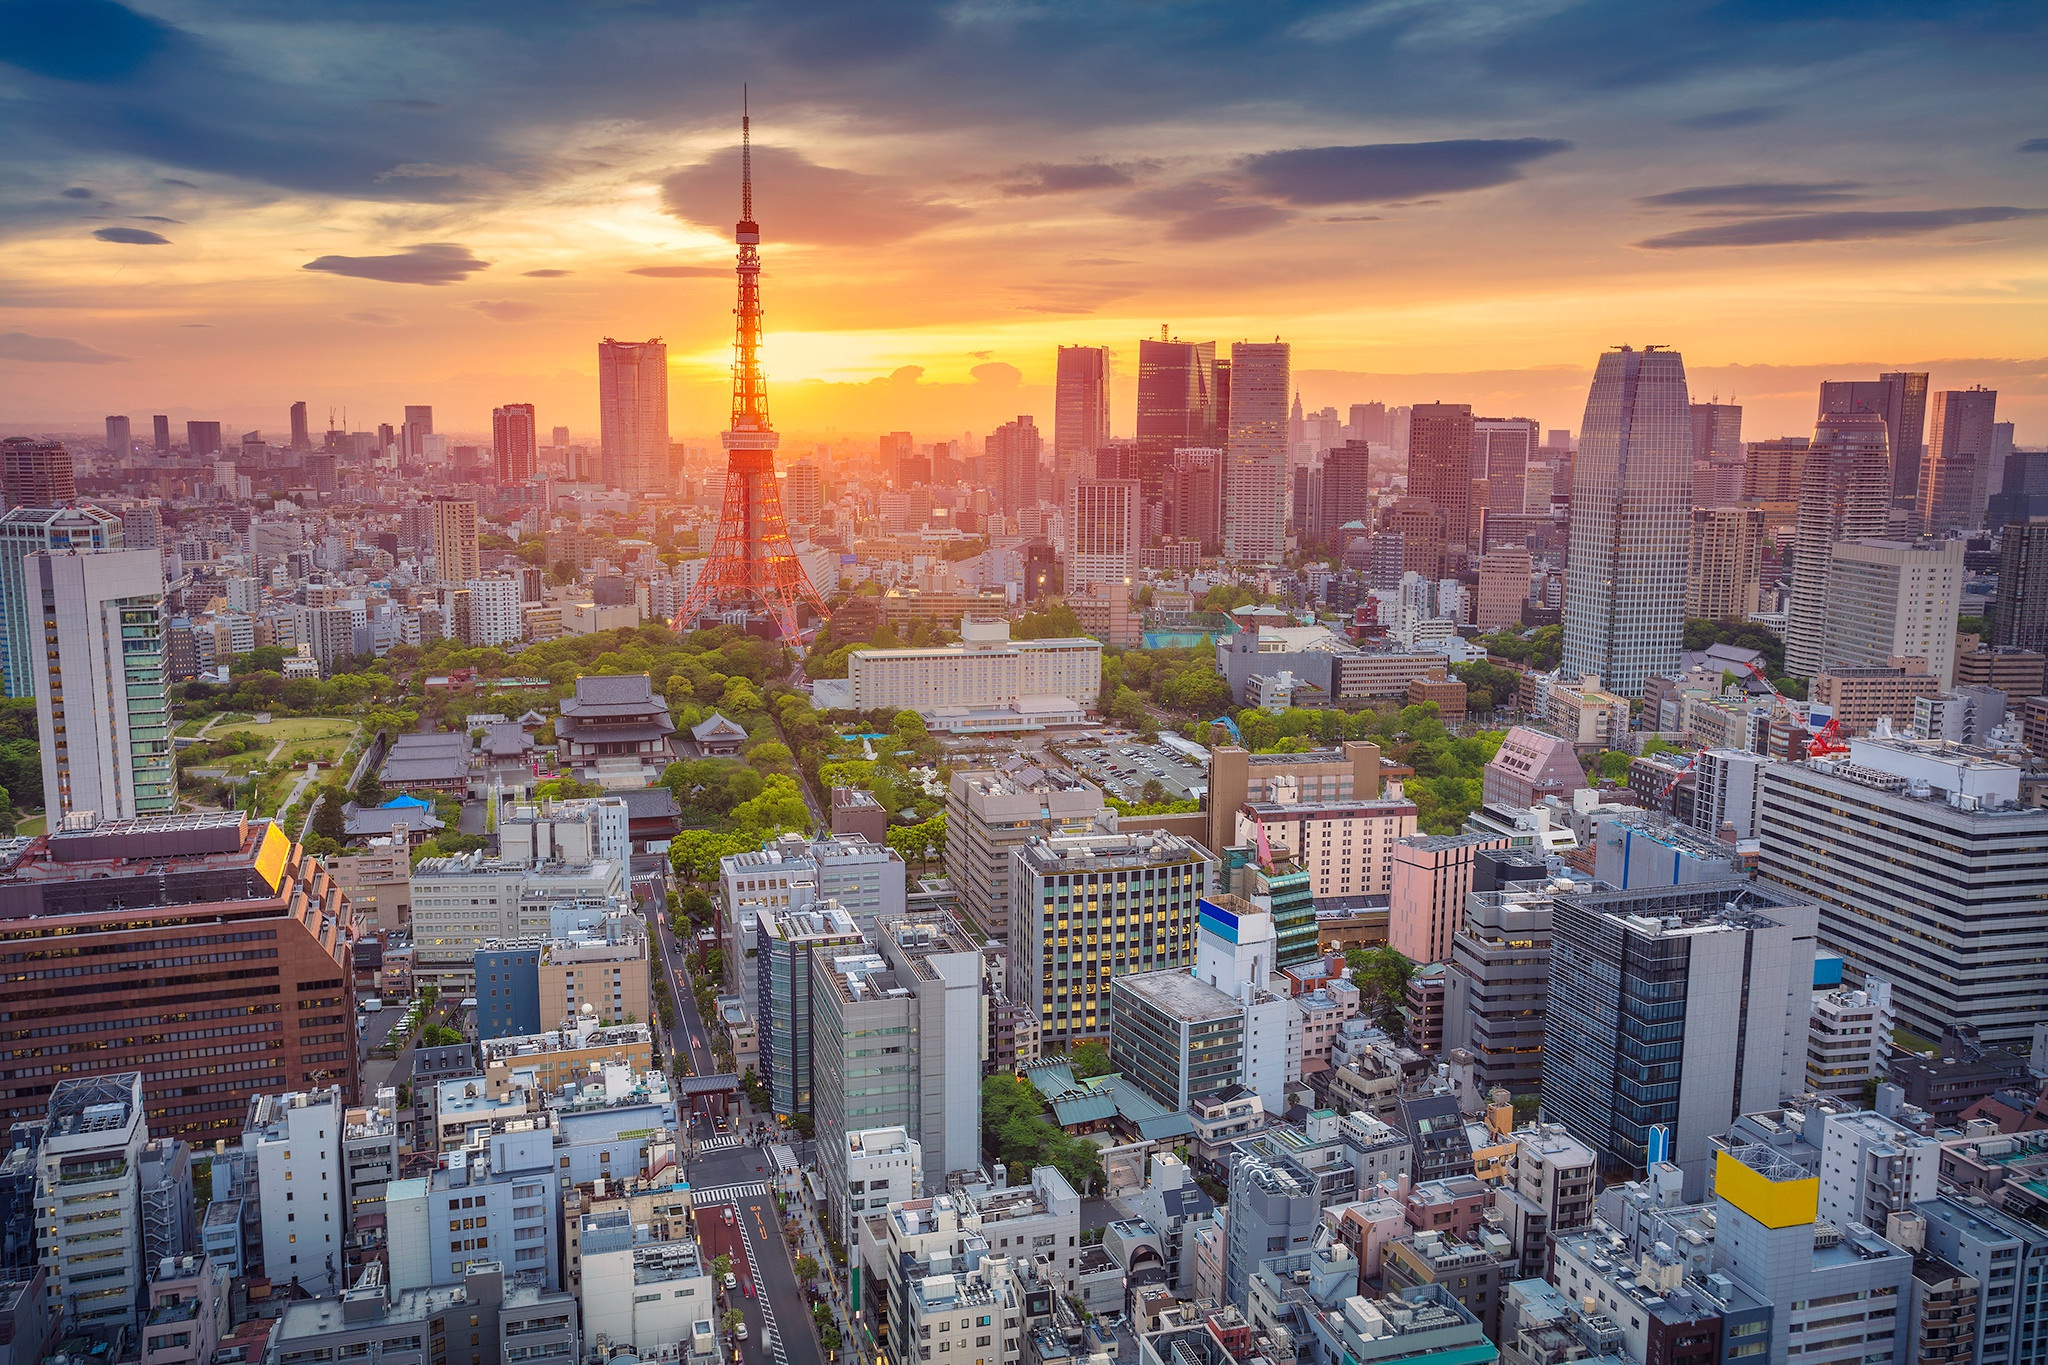 Tokyo HD Wallpaper | Background Image | 2048x1365 | ID:831673 - Wallpaper Abyss